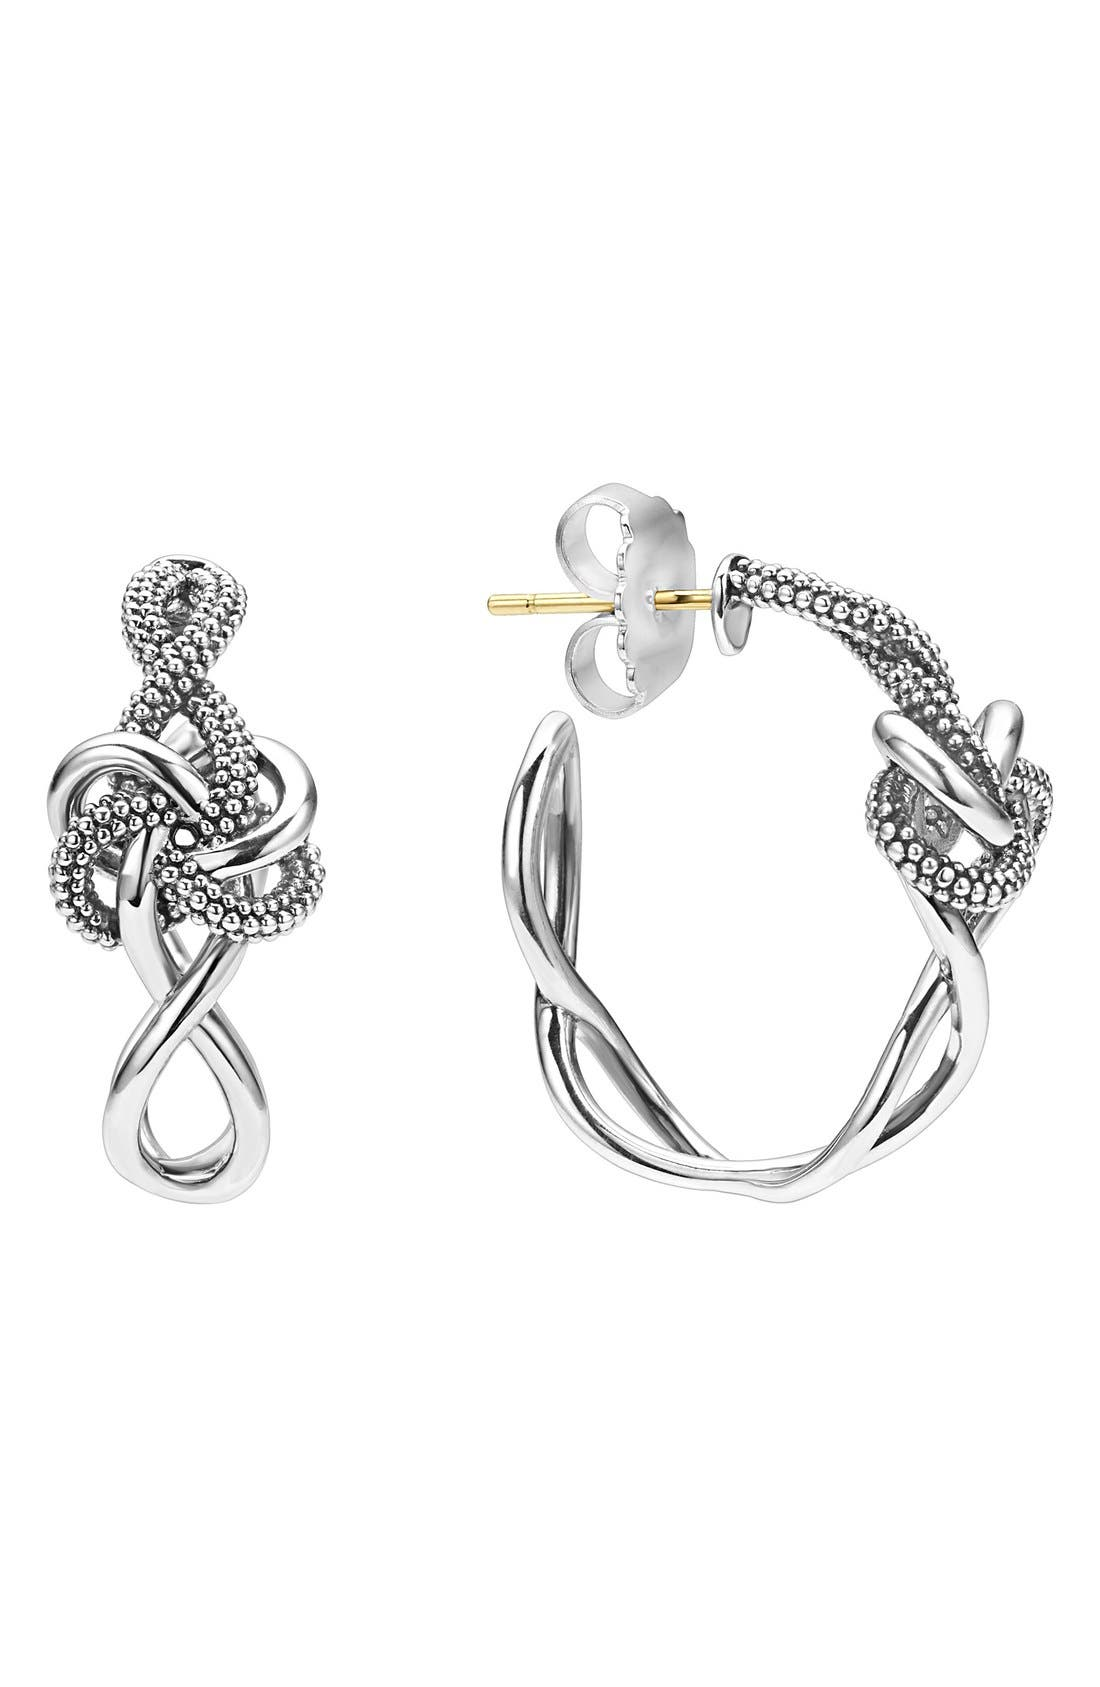 LAGOS 'Love Knot' Hoop Earrings